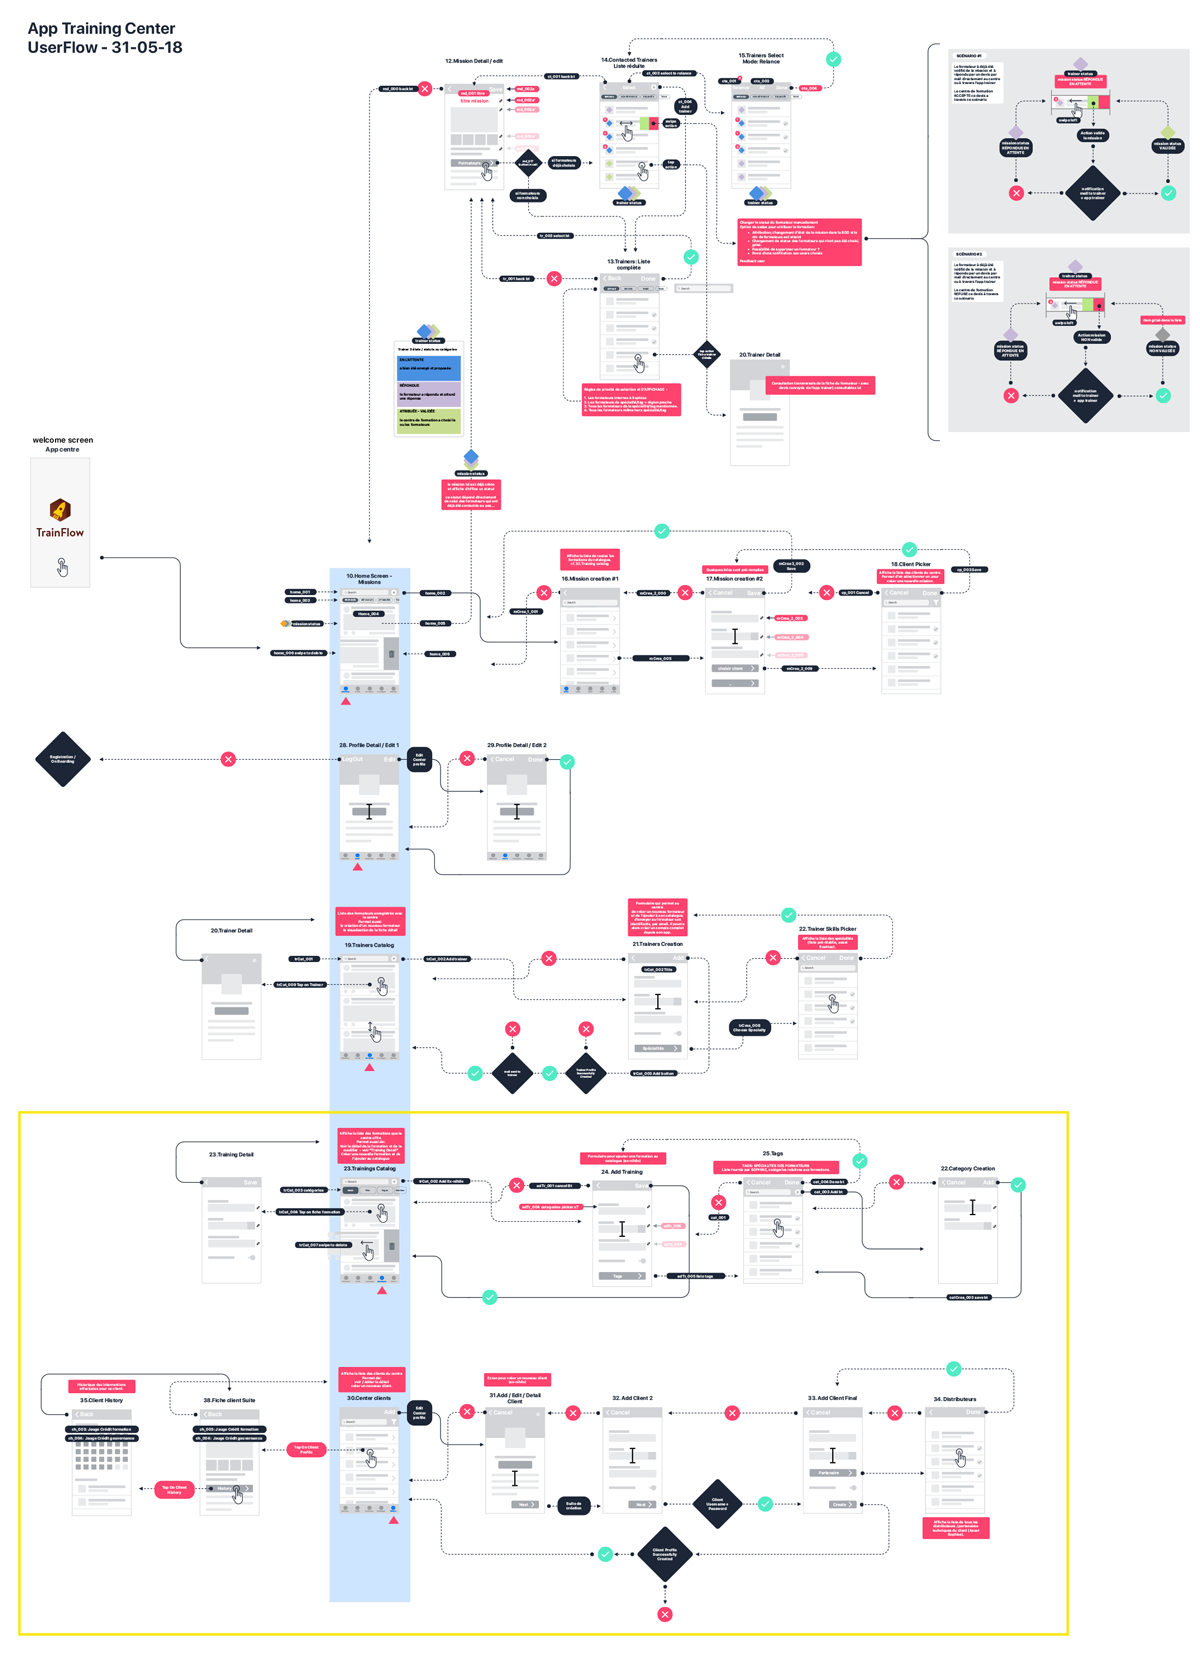 AppTrainingCenter UserFlow 310518